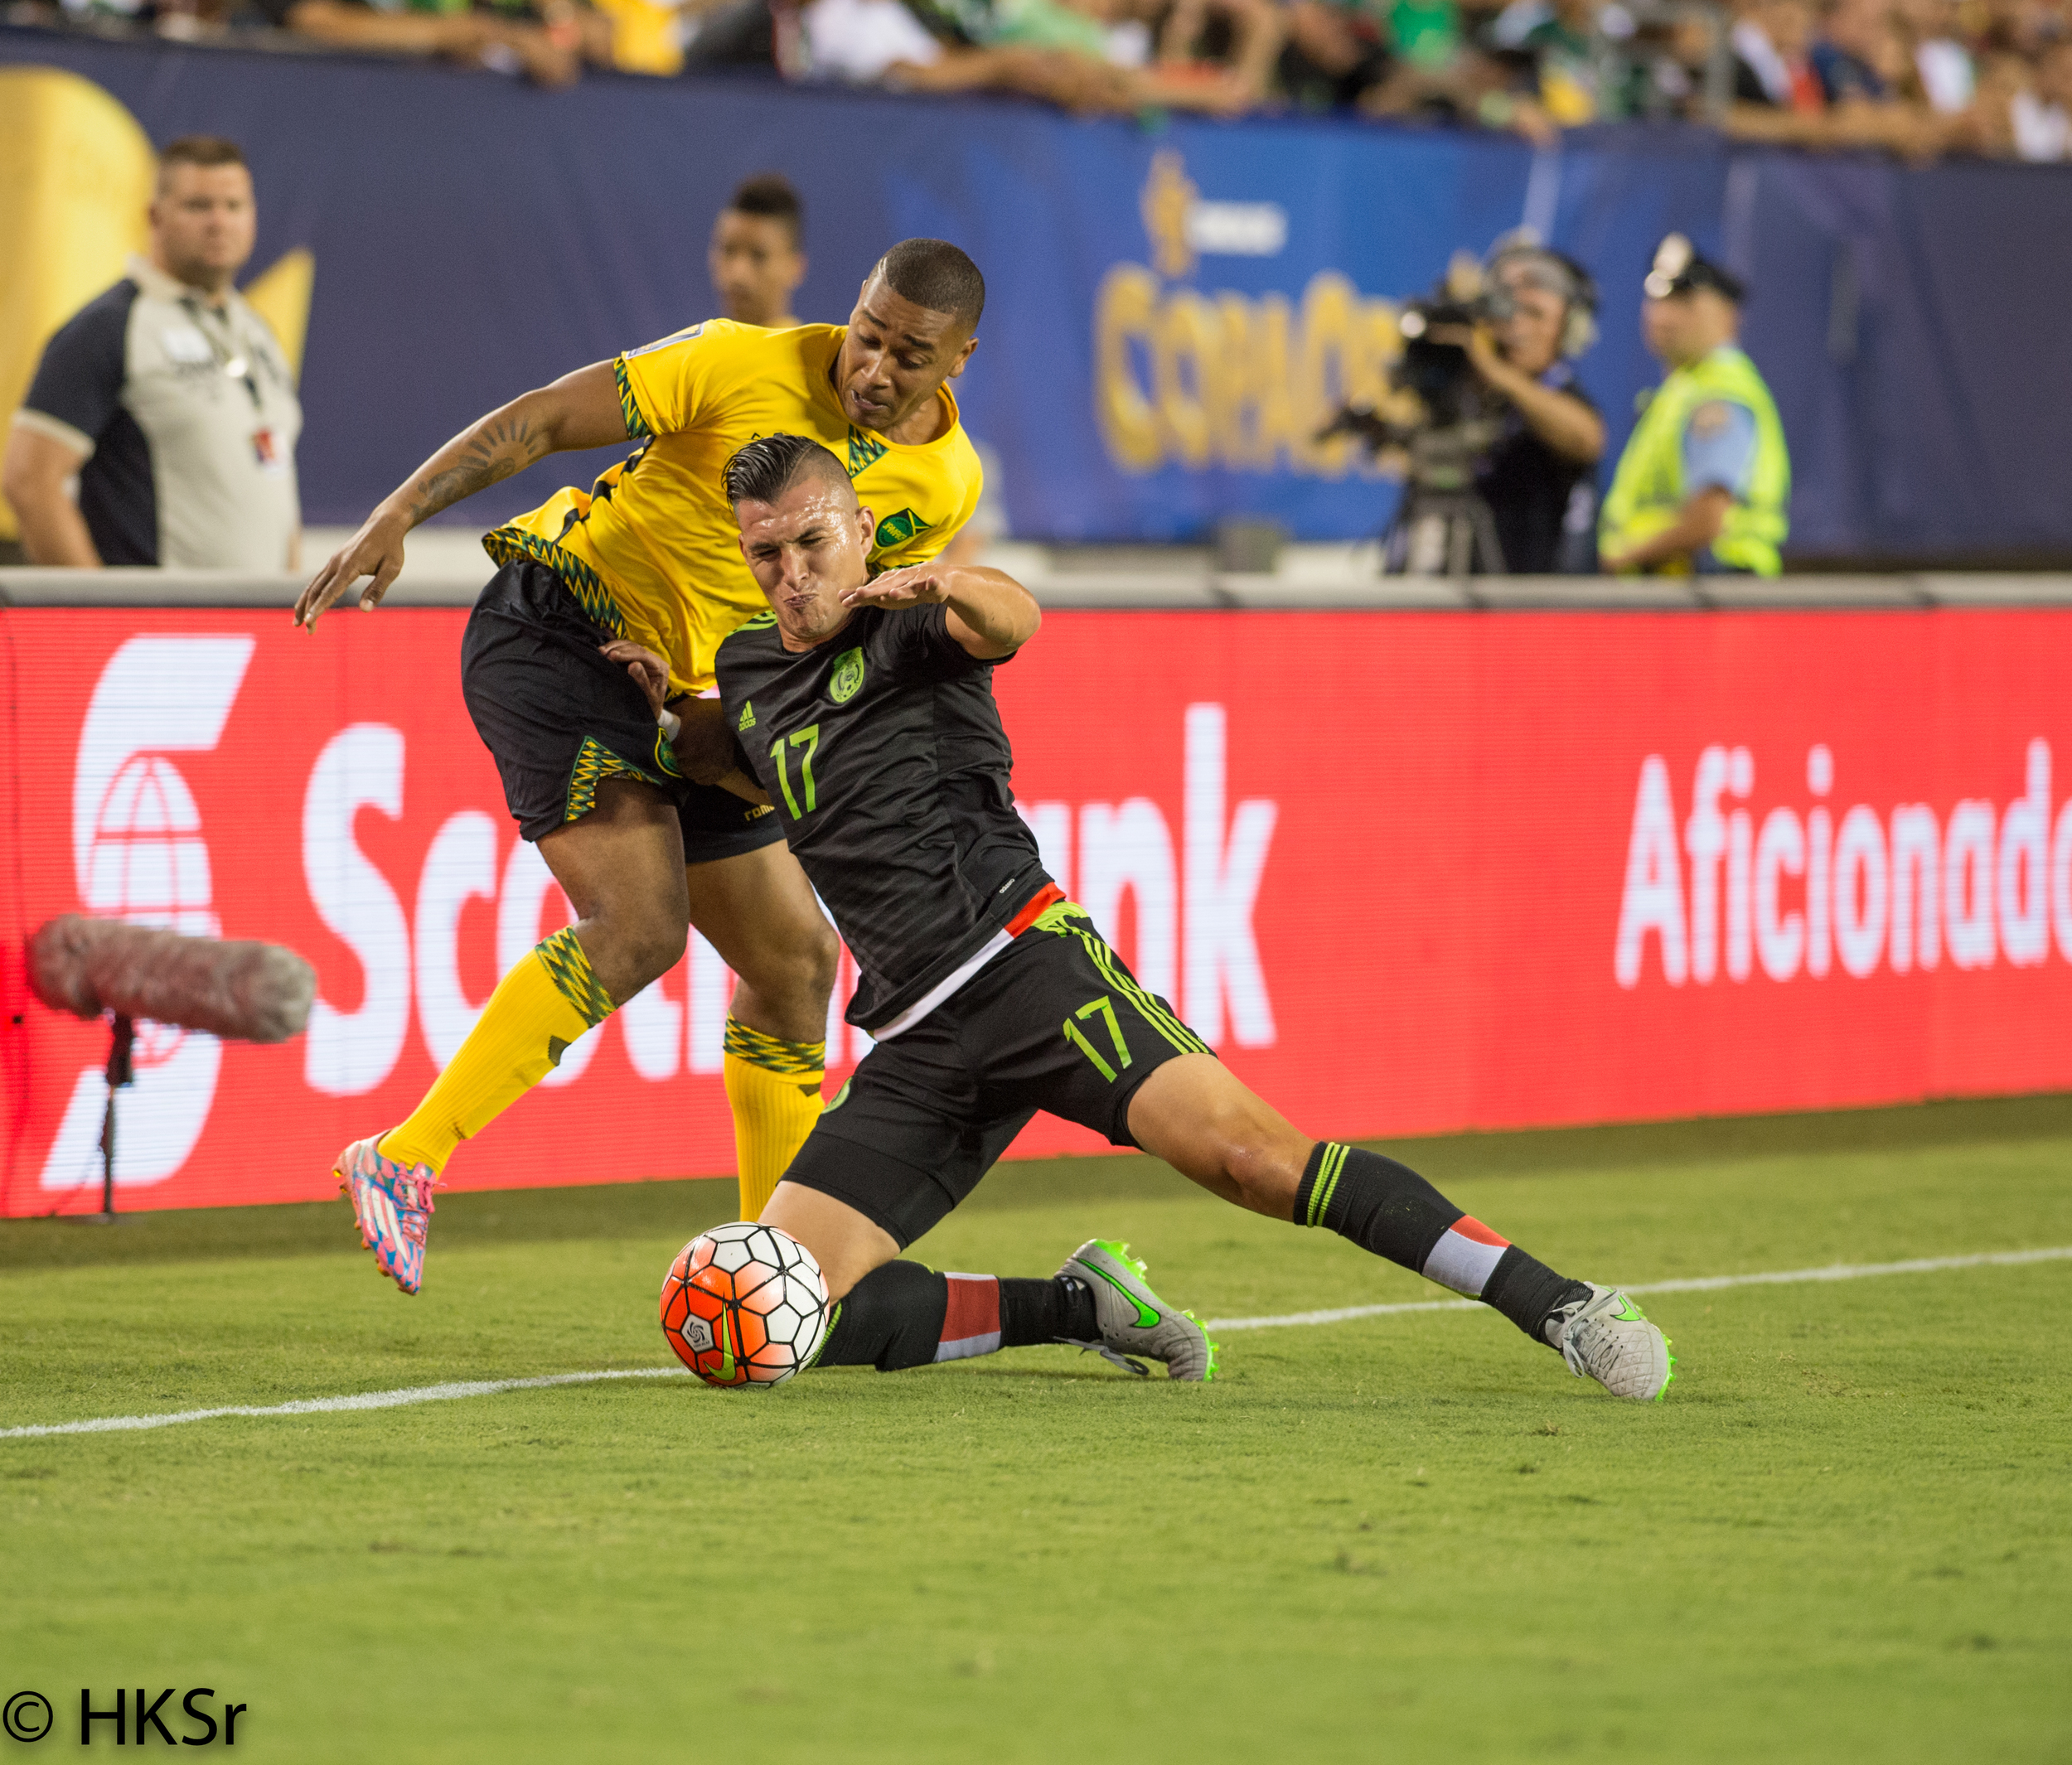 Mexico player #17 Jorge Torres Nilo fights off Jamaica player#2 Christopher Humphrey for ball position.